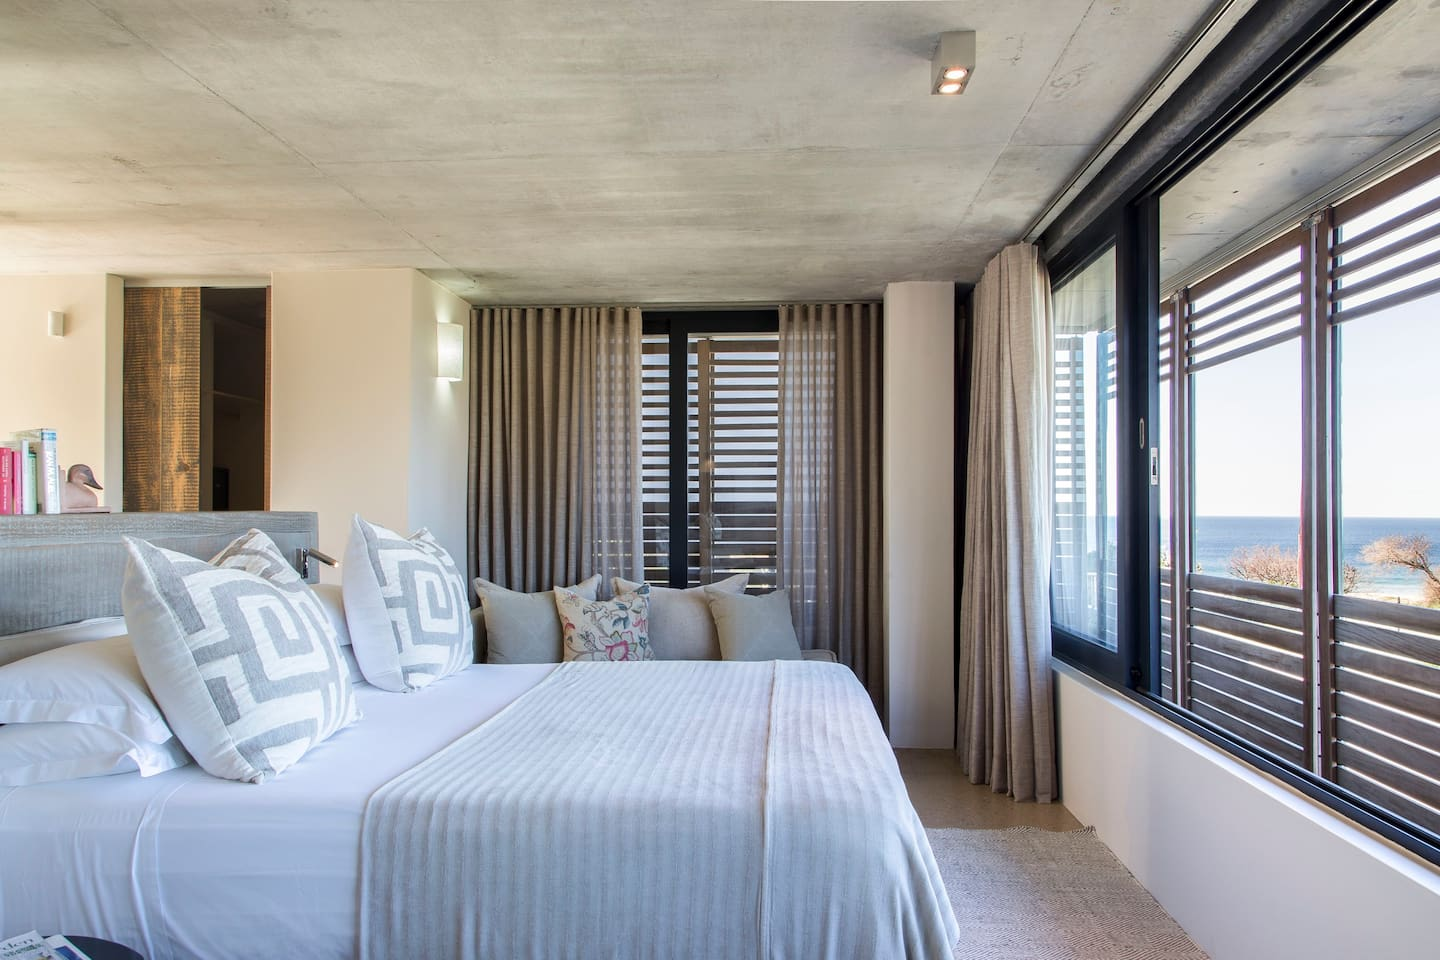 House Philip 1 is undoubtedly Christiana Lodge's best room. It is spacious with views of the ocean from the bedroom. It also has its own private swimming pool.